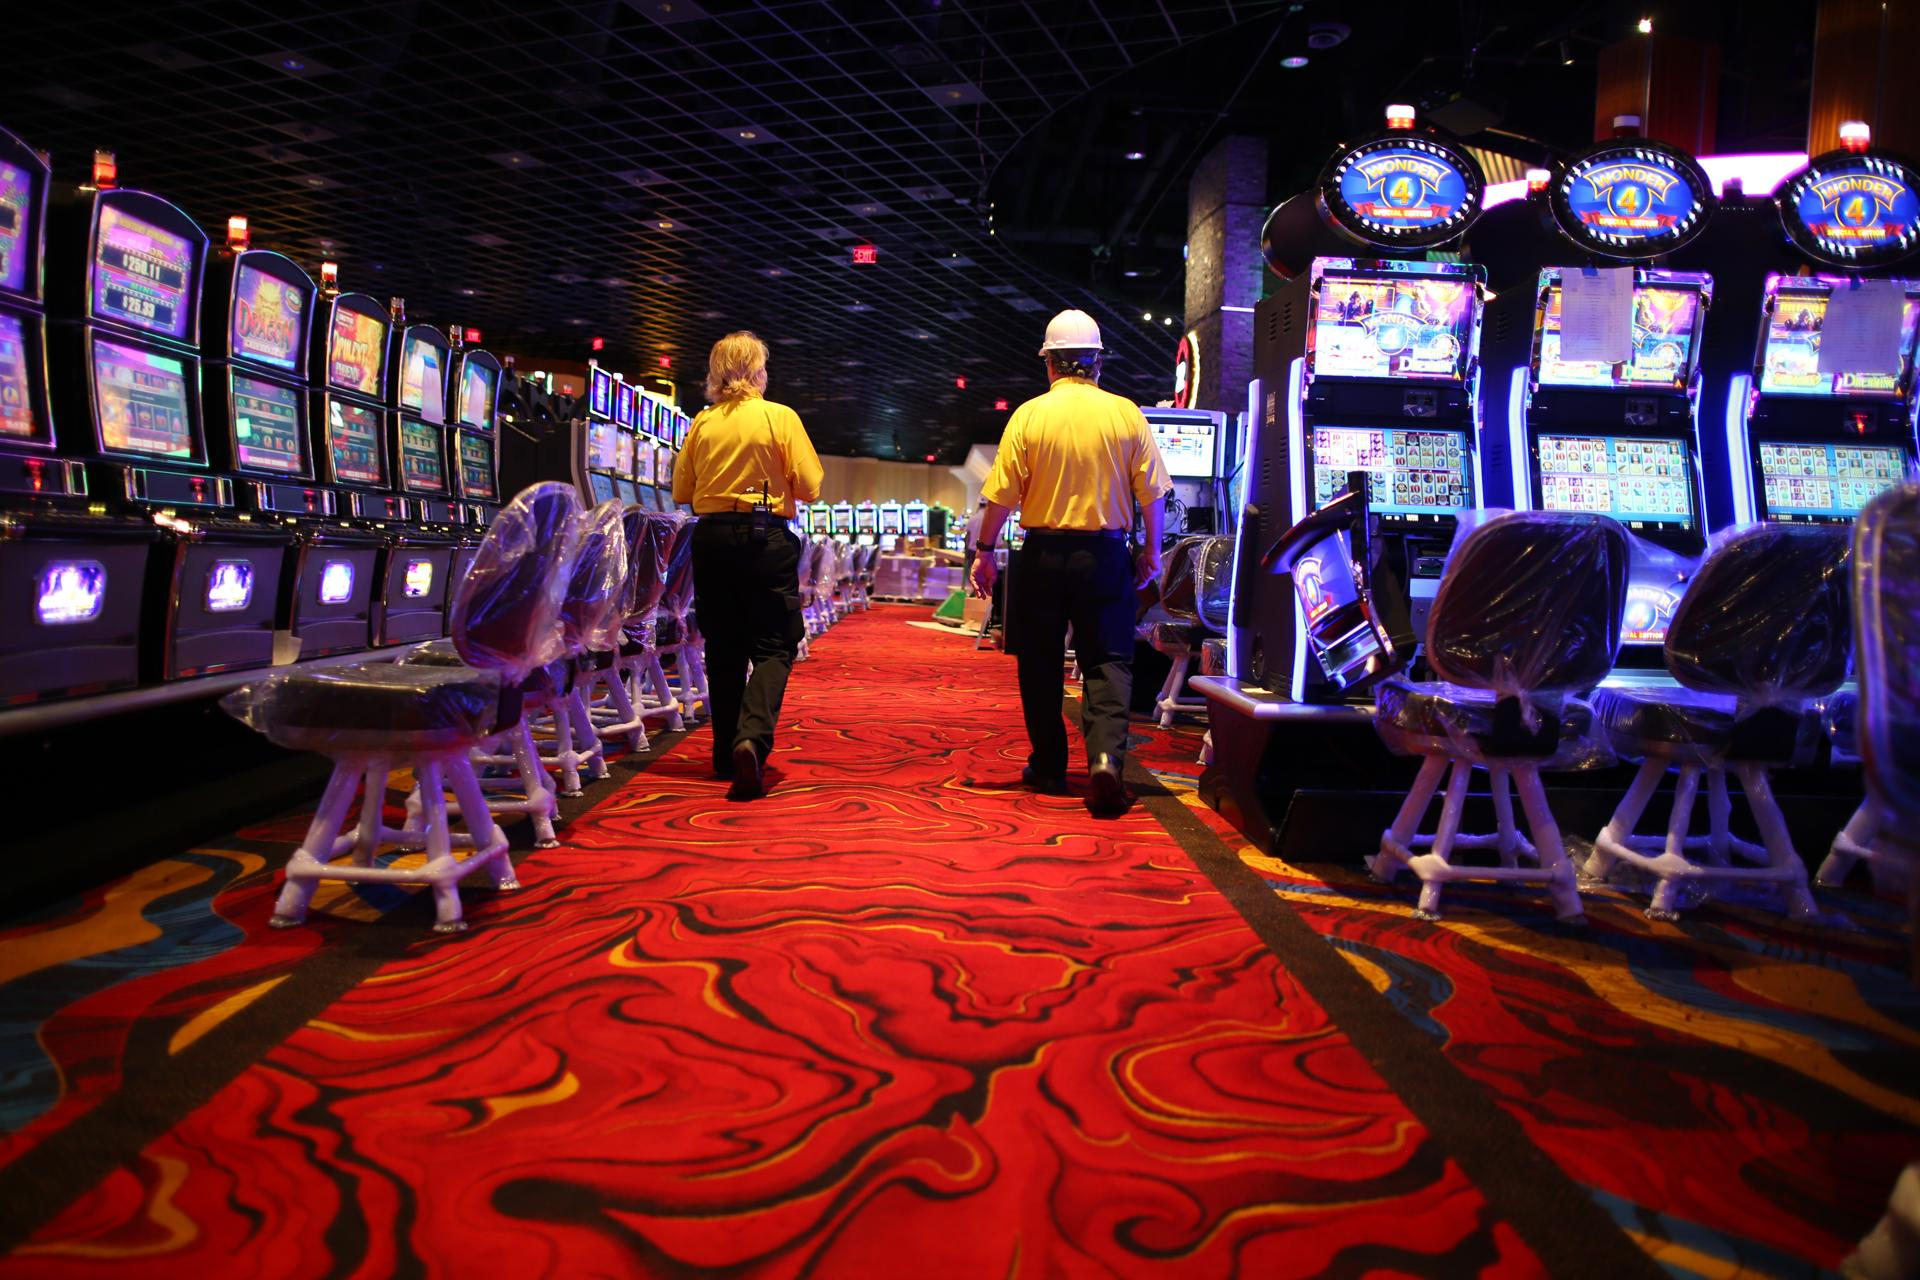 The nonsmoking casino in Plainville includes 1,500 slot and video blackjack machines.